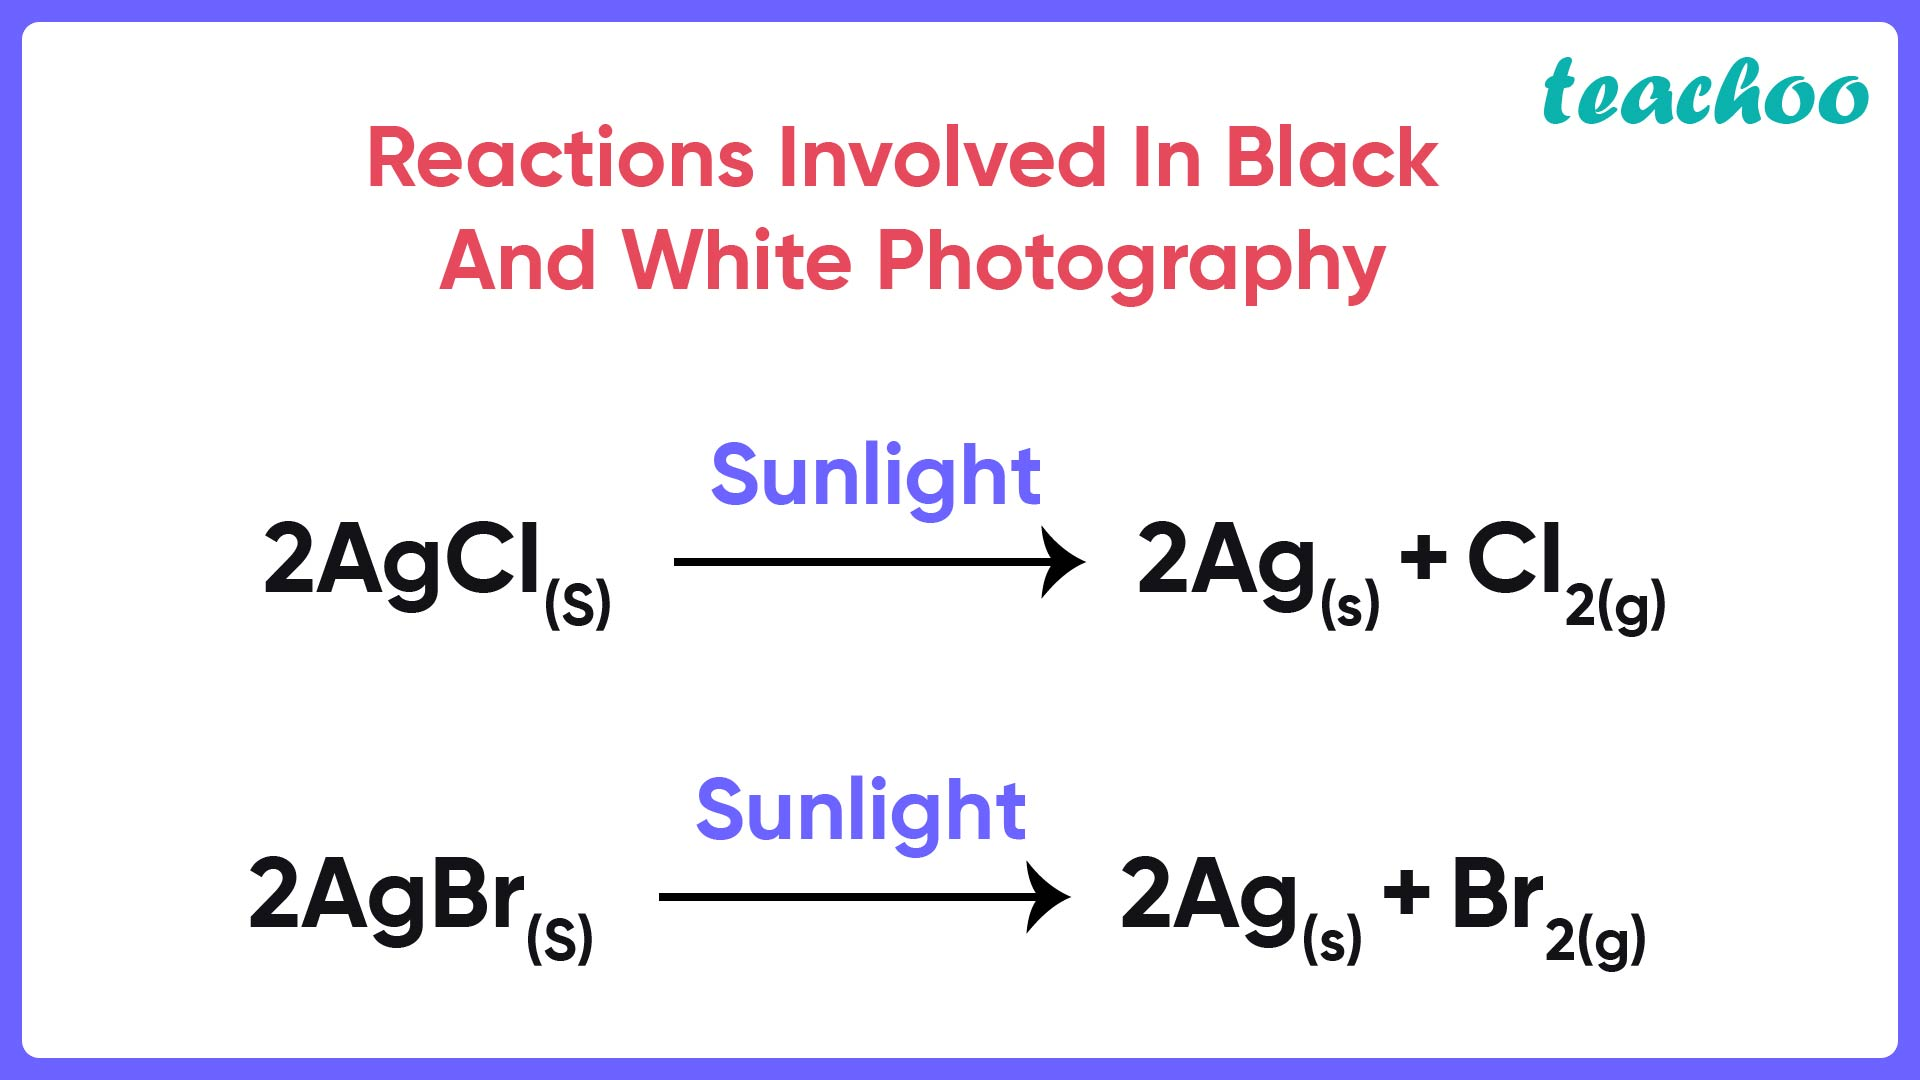 Reactions Involved In Black And White Photography - Teachoo-01.jpg